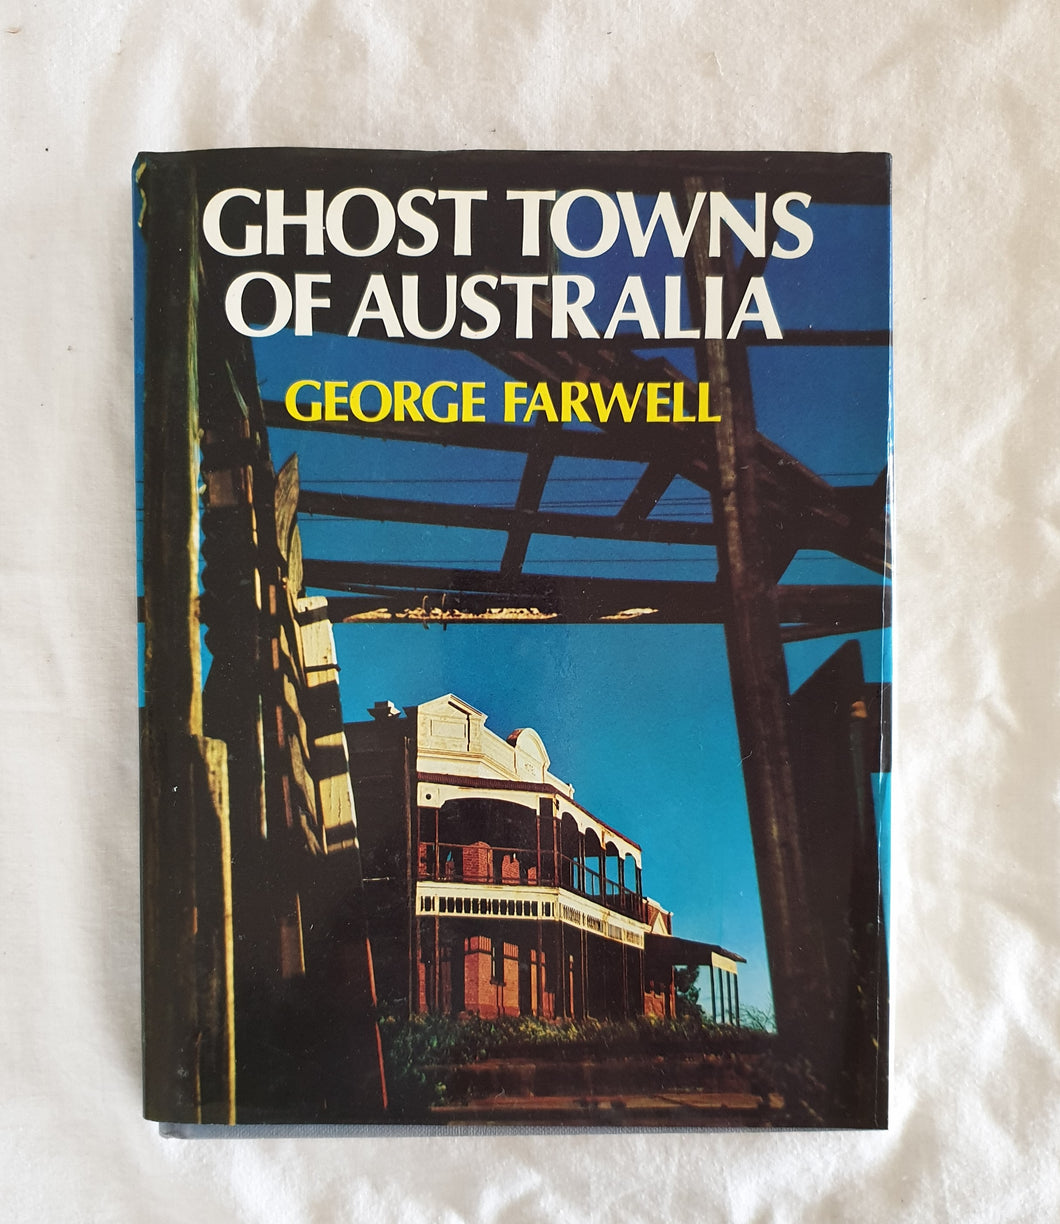 Ghost Towns of Australia  by George Farwell